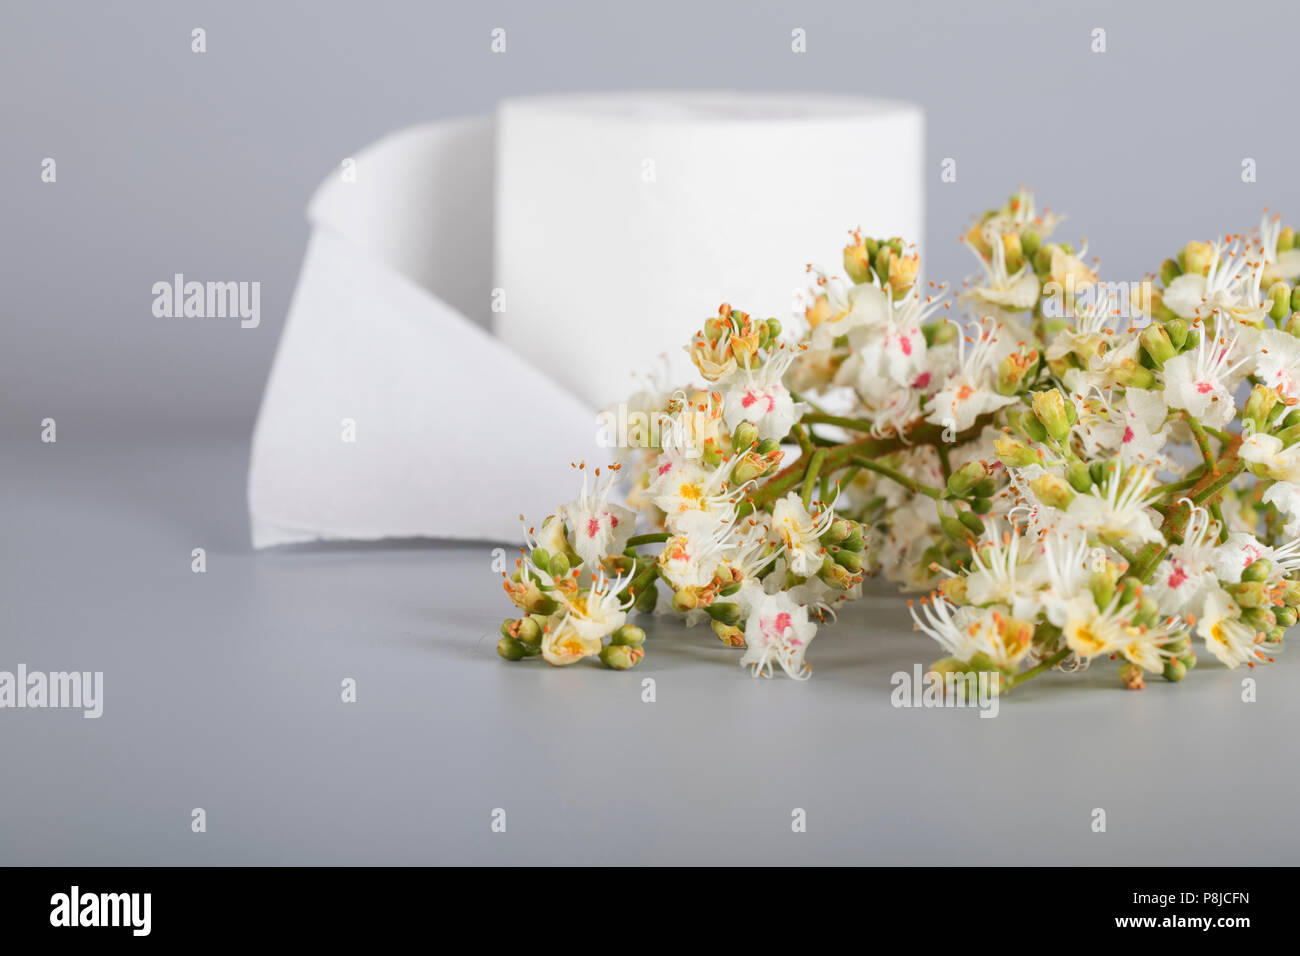 Horse Chestnut Flowers On A Gray Surface Roll Of Toilet Paper In